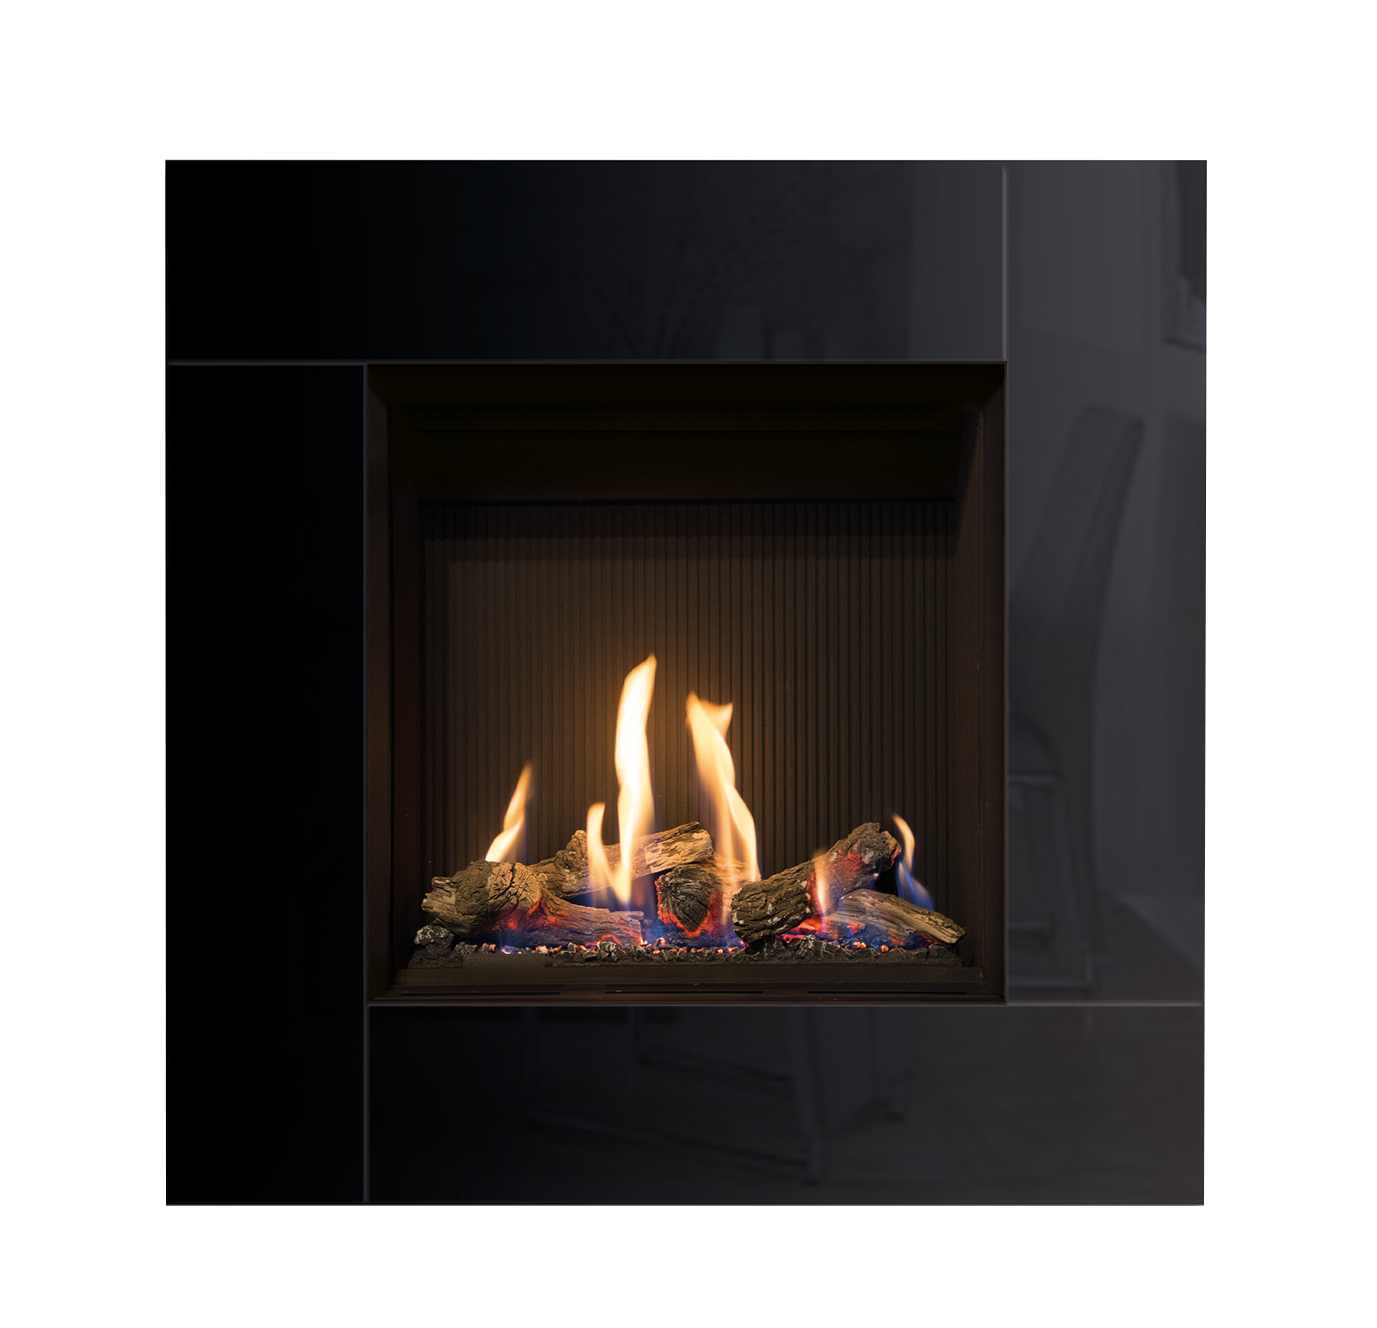 Hearth heat png download. Fireplace clipart gas fireplace